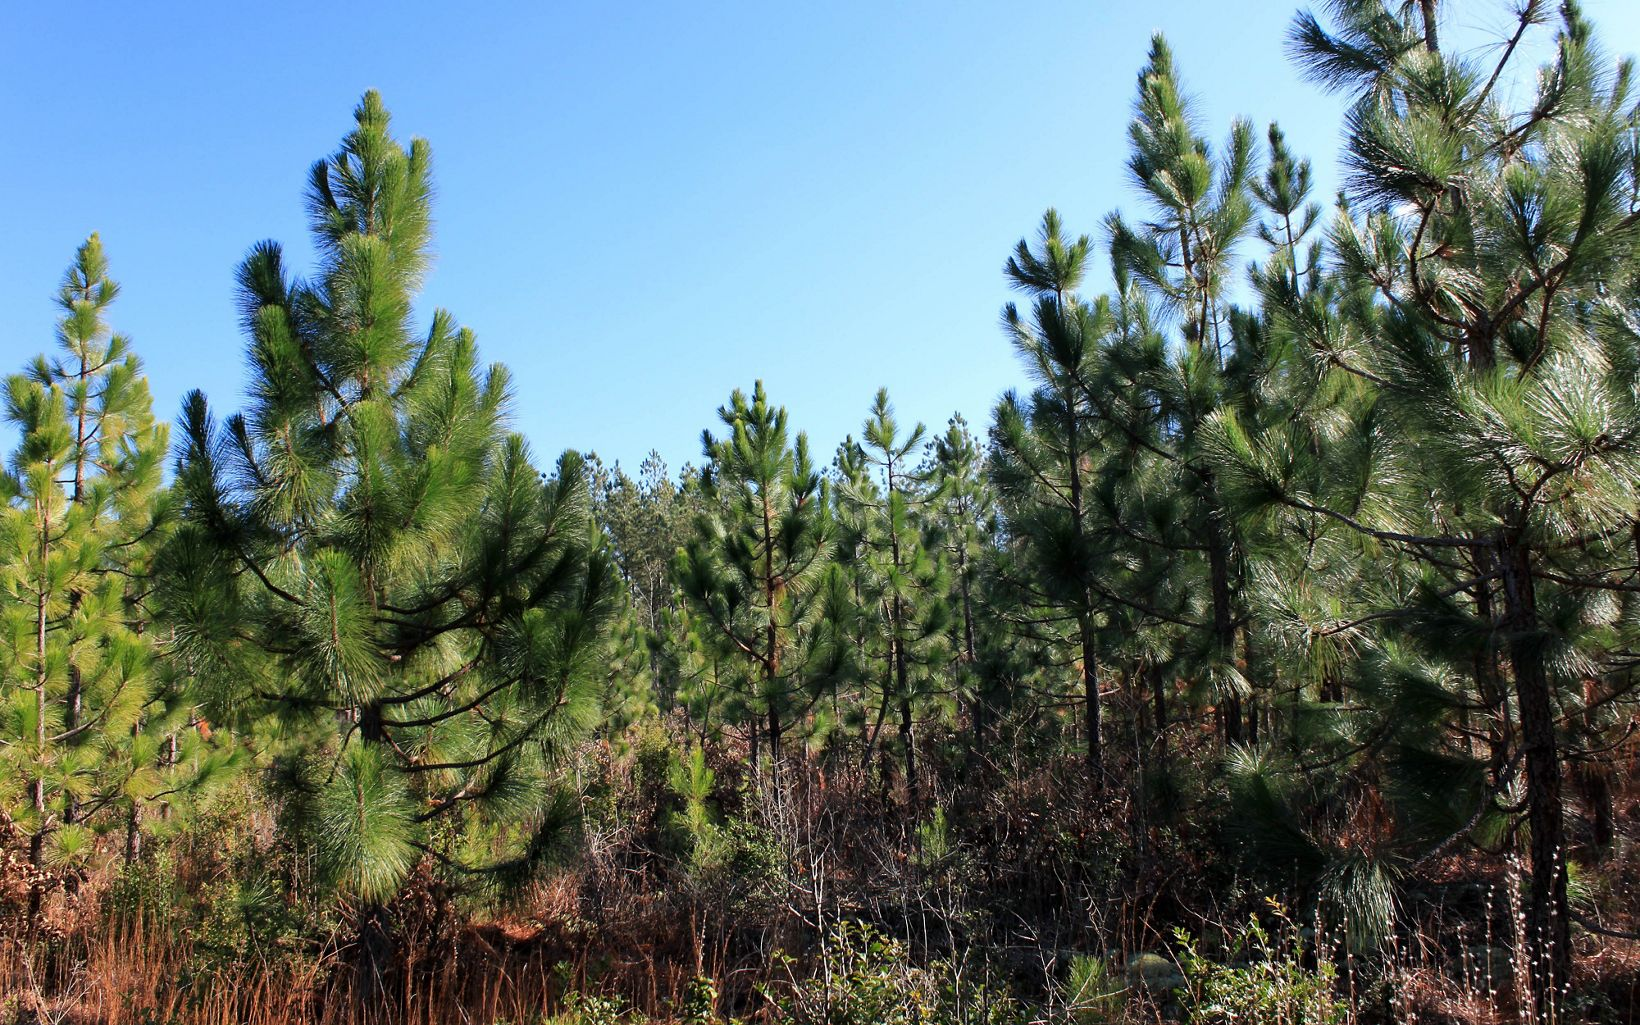 A stand of 6 to 10 foot longleaf saplings closely spaced together.